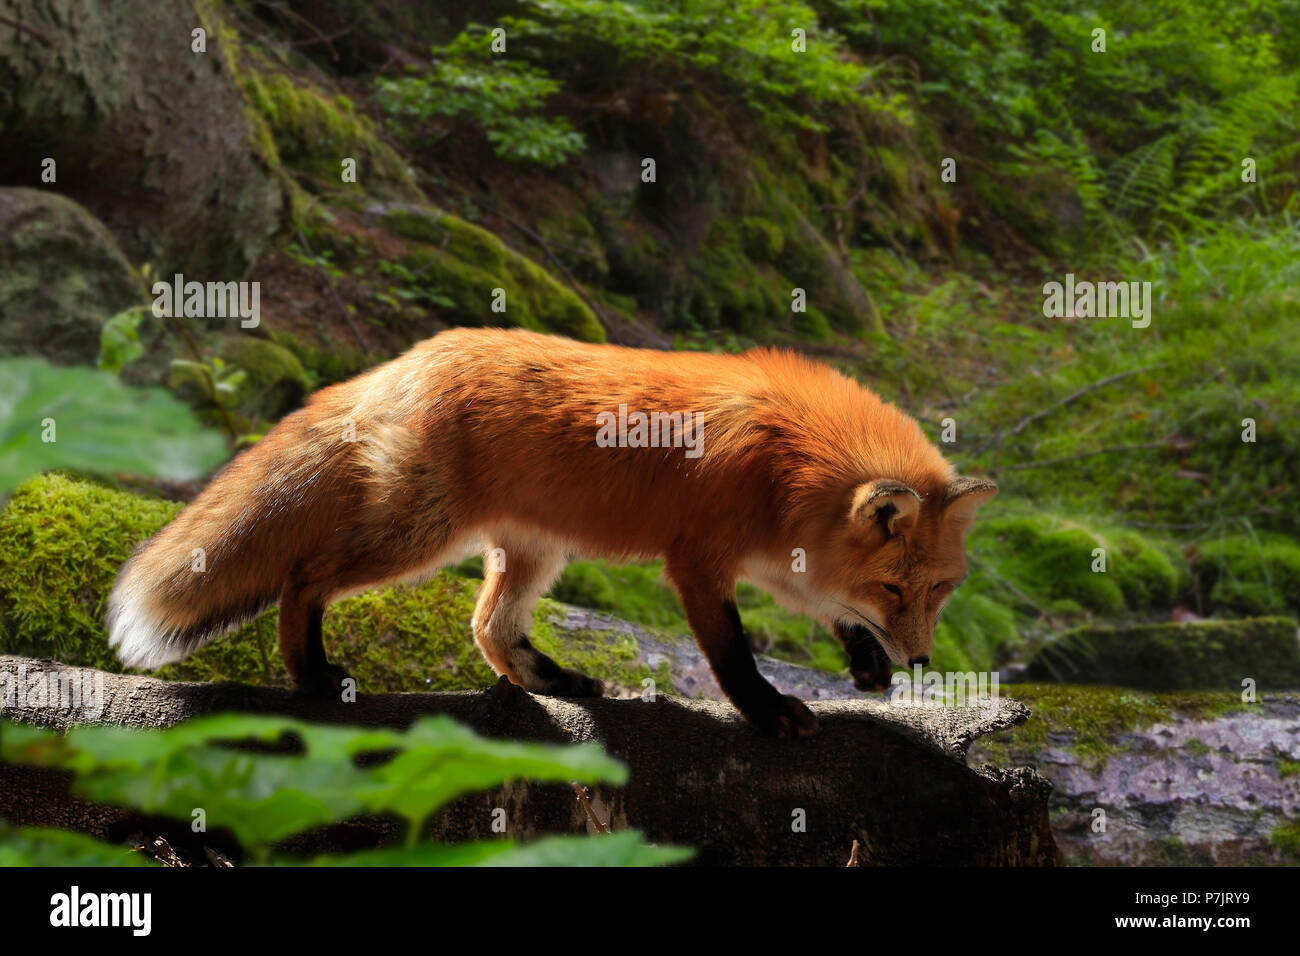 Red fox, Vulpes vulpes in a forest, Bavaria, Germany, Europe - Stock Image